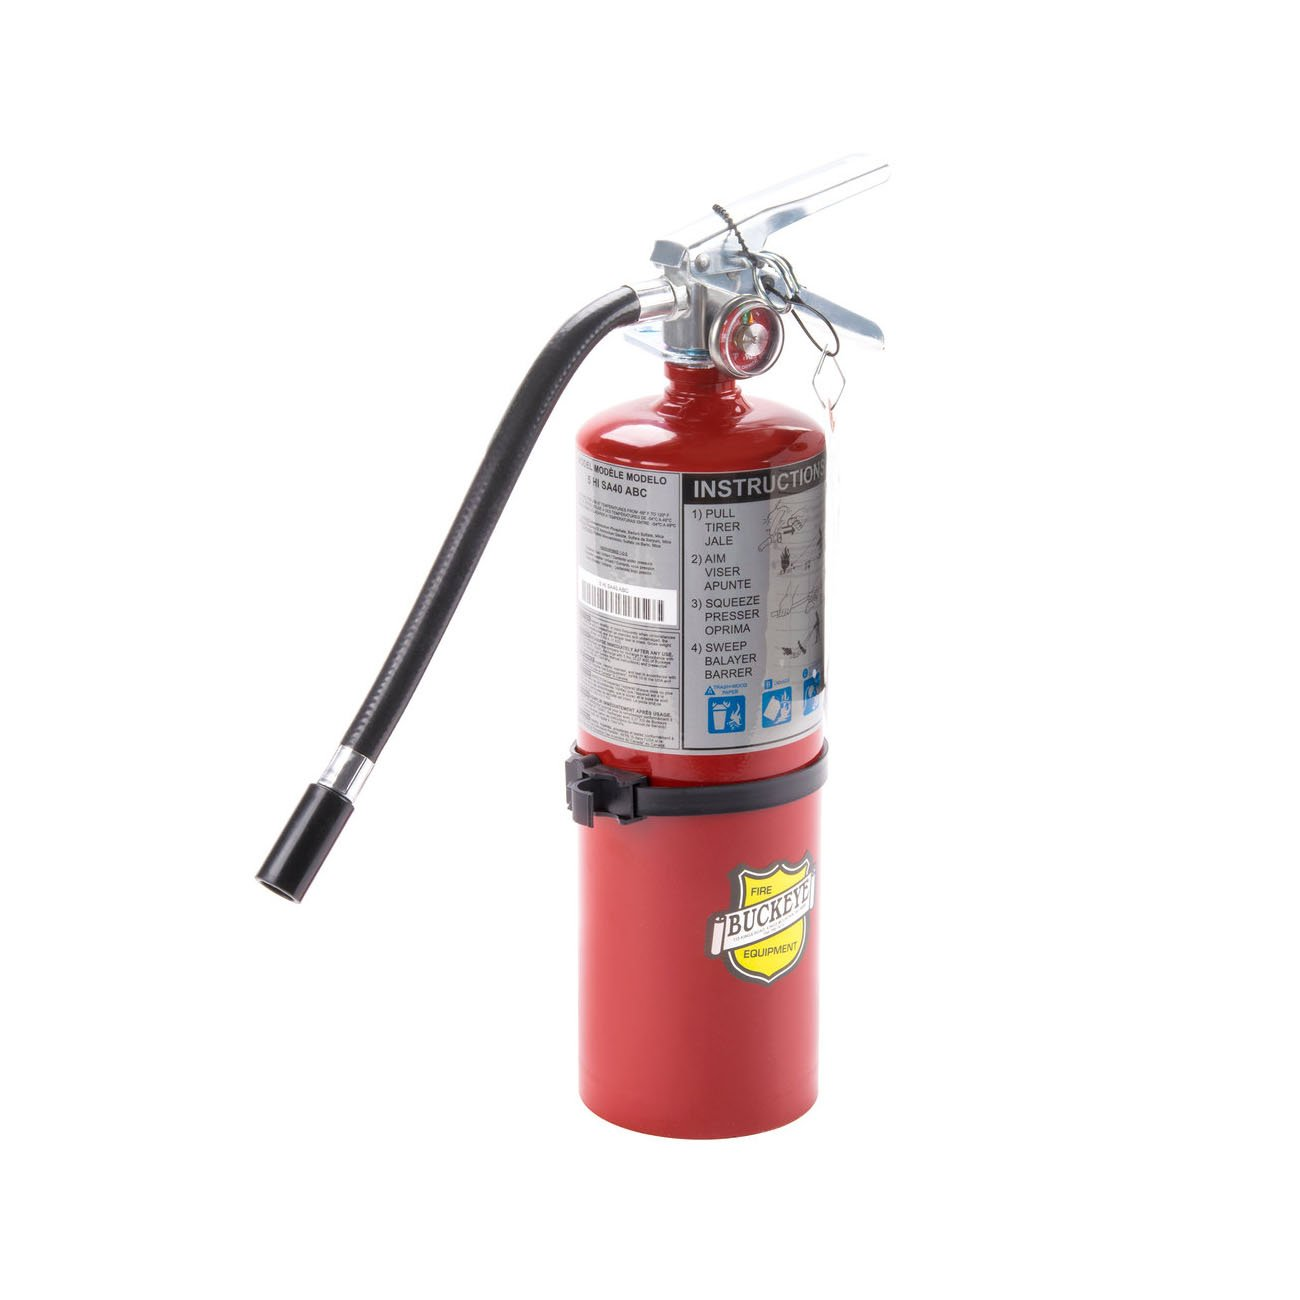 Buckeye 25614 Multi-Purpose and Chemical Handheld ABC Fire Extinguisher